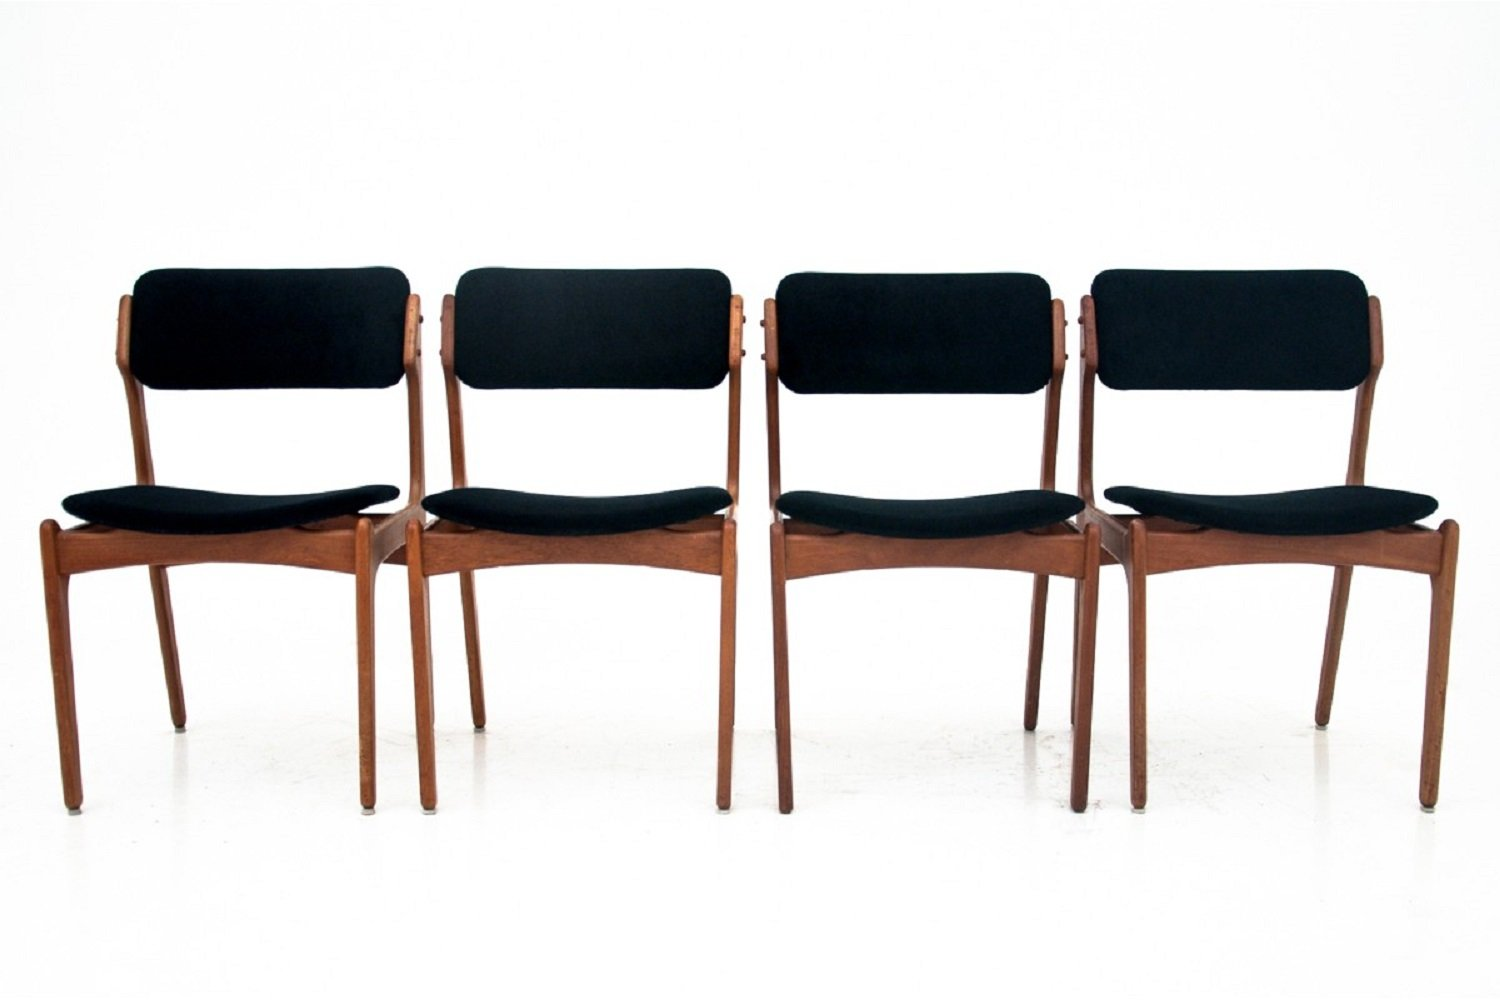 Four Danish Dining Chairs, 1970s